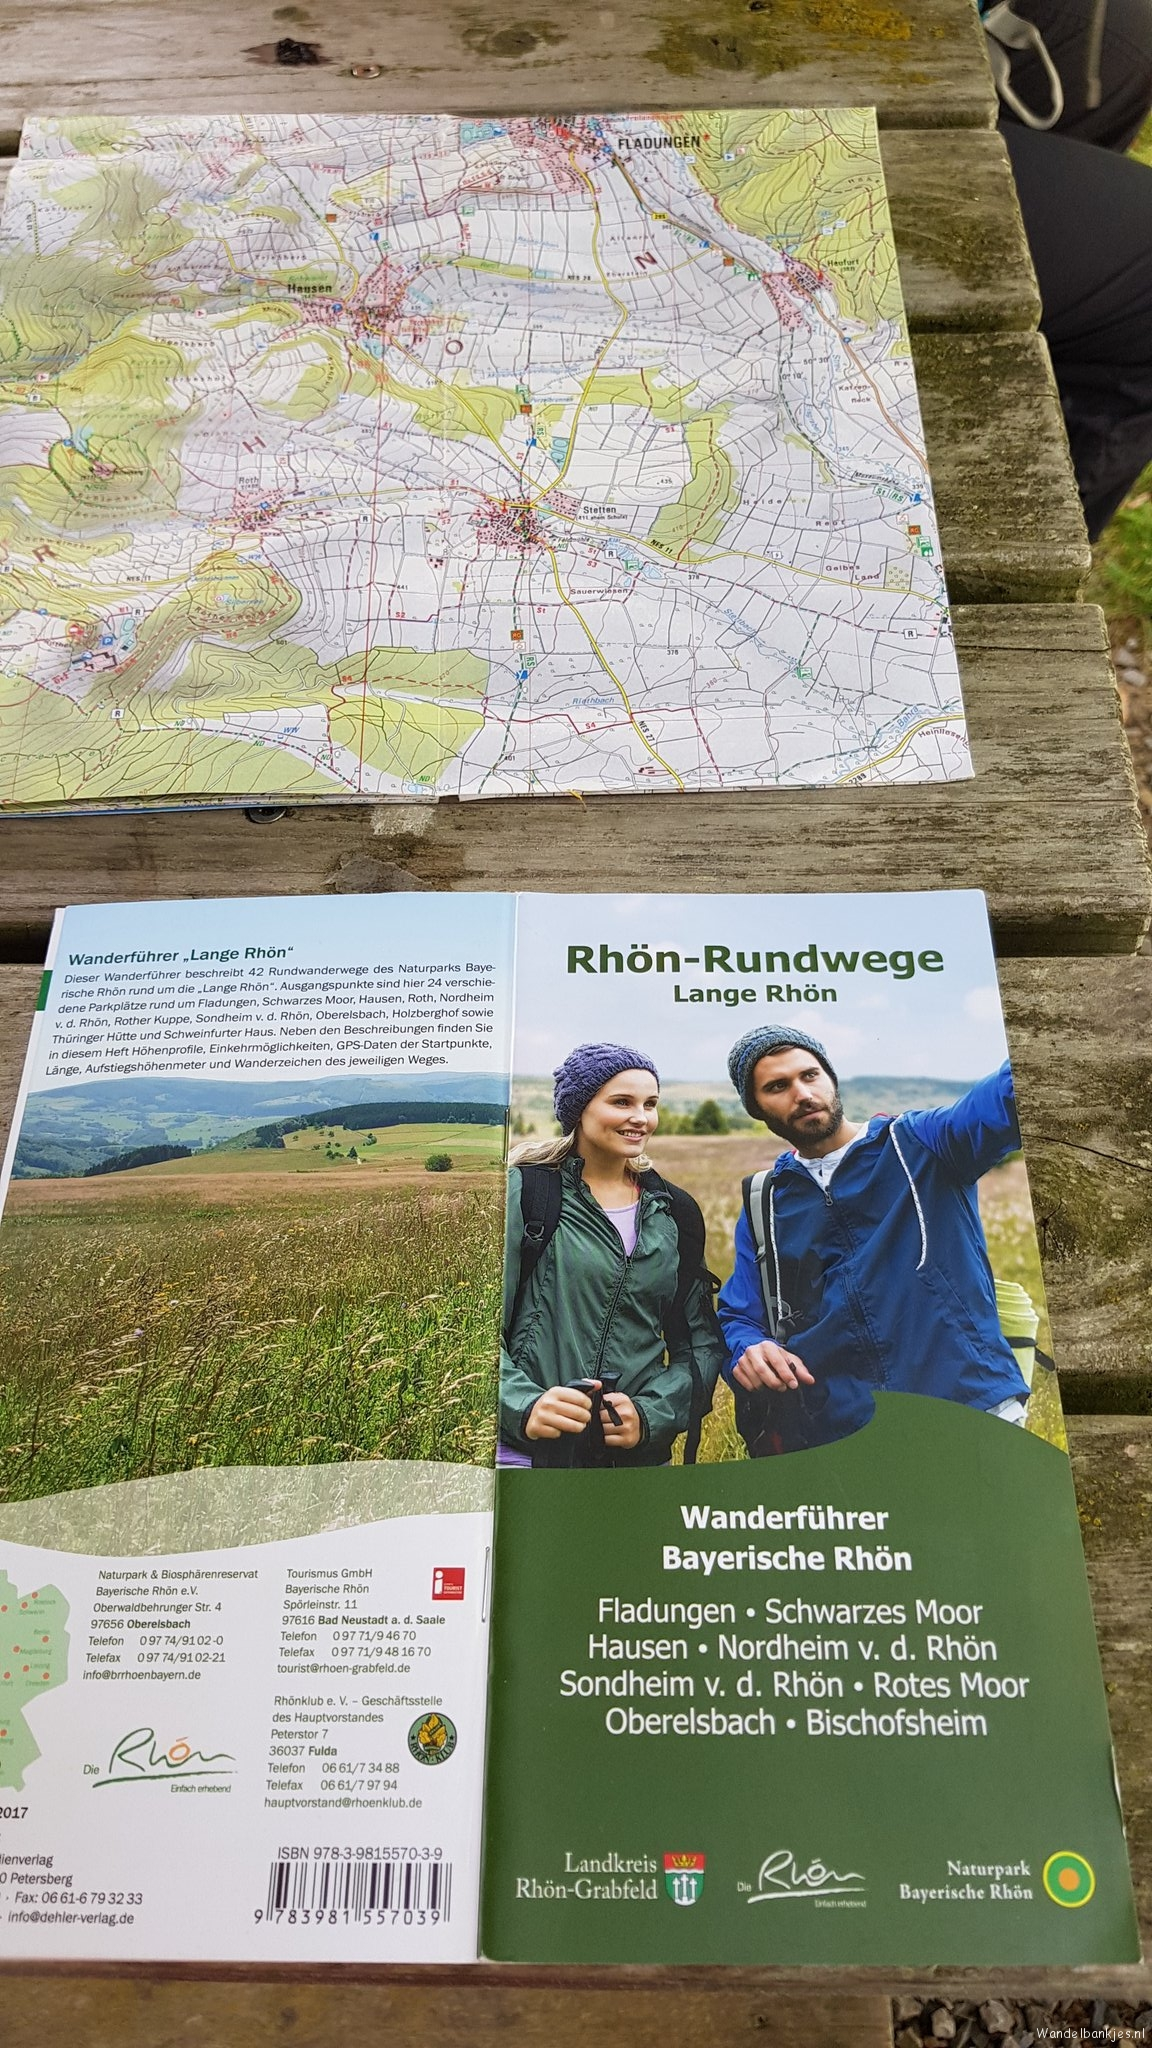 rt-wolfswanding-hiking-around-hausen-in-the-bayerische-rhon-of-all-hiking -fitting-hiking-benches-https-t-co-bwr8ywi